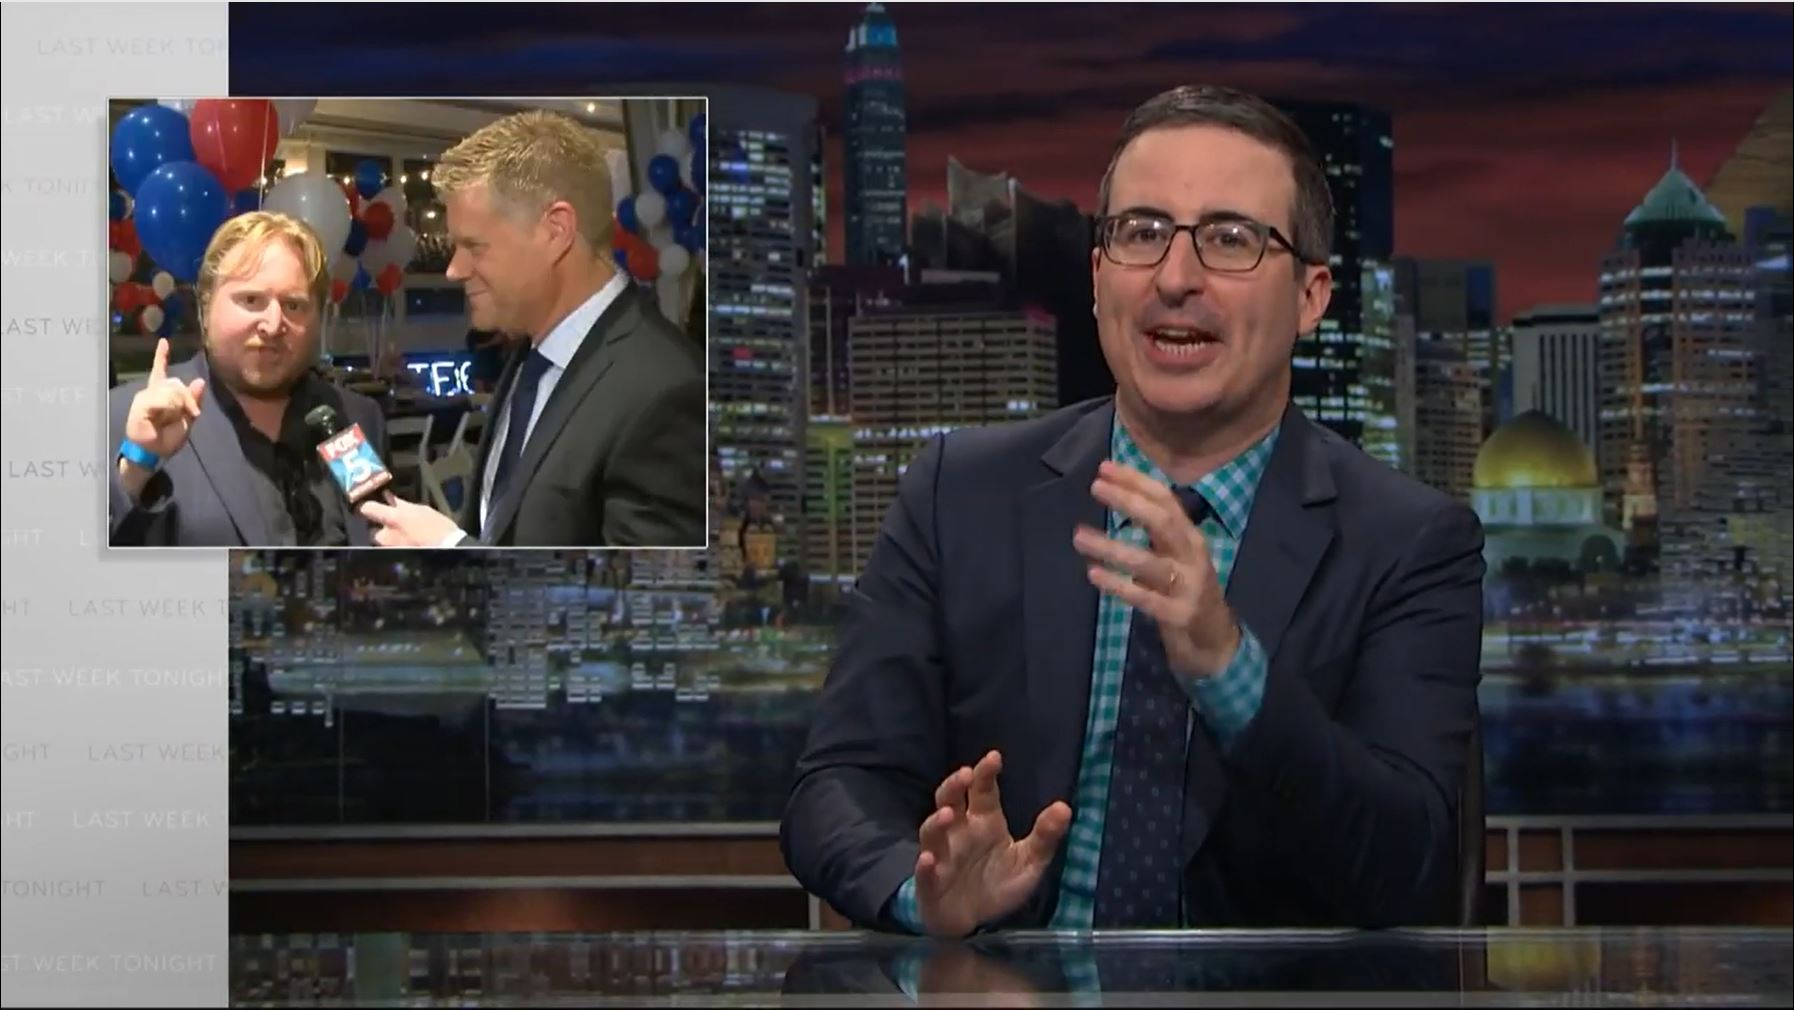 [WATCH]CMW CEO Featured in HBO Last Week Tonight with John Oliver Segment